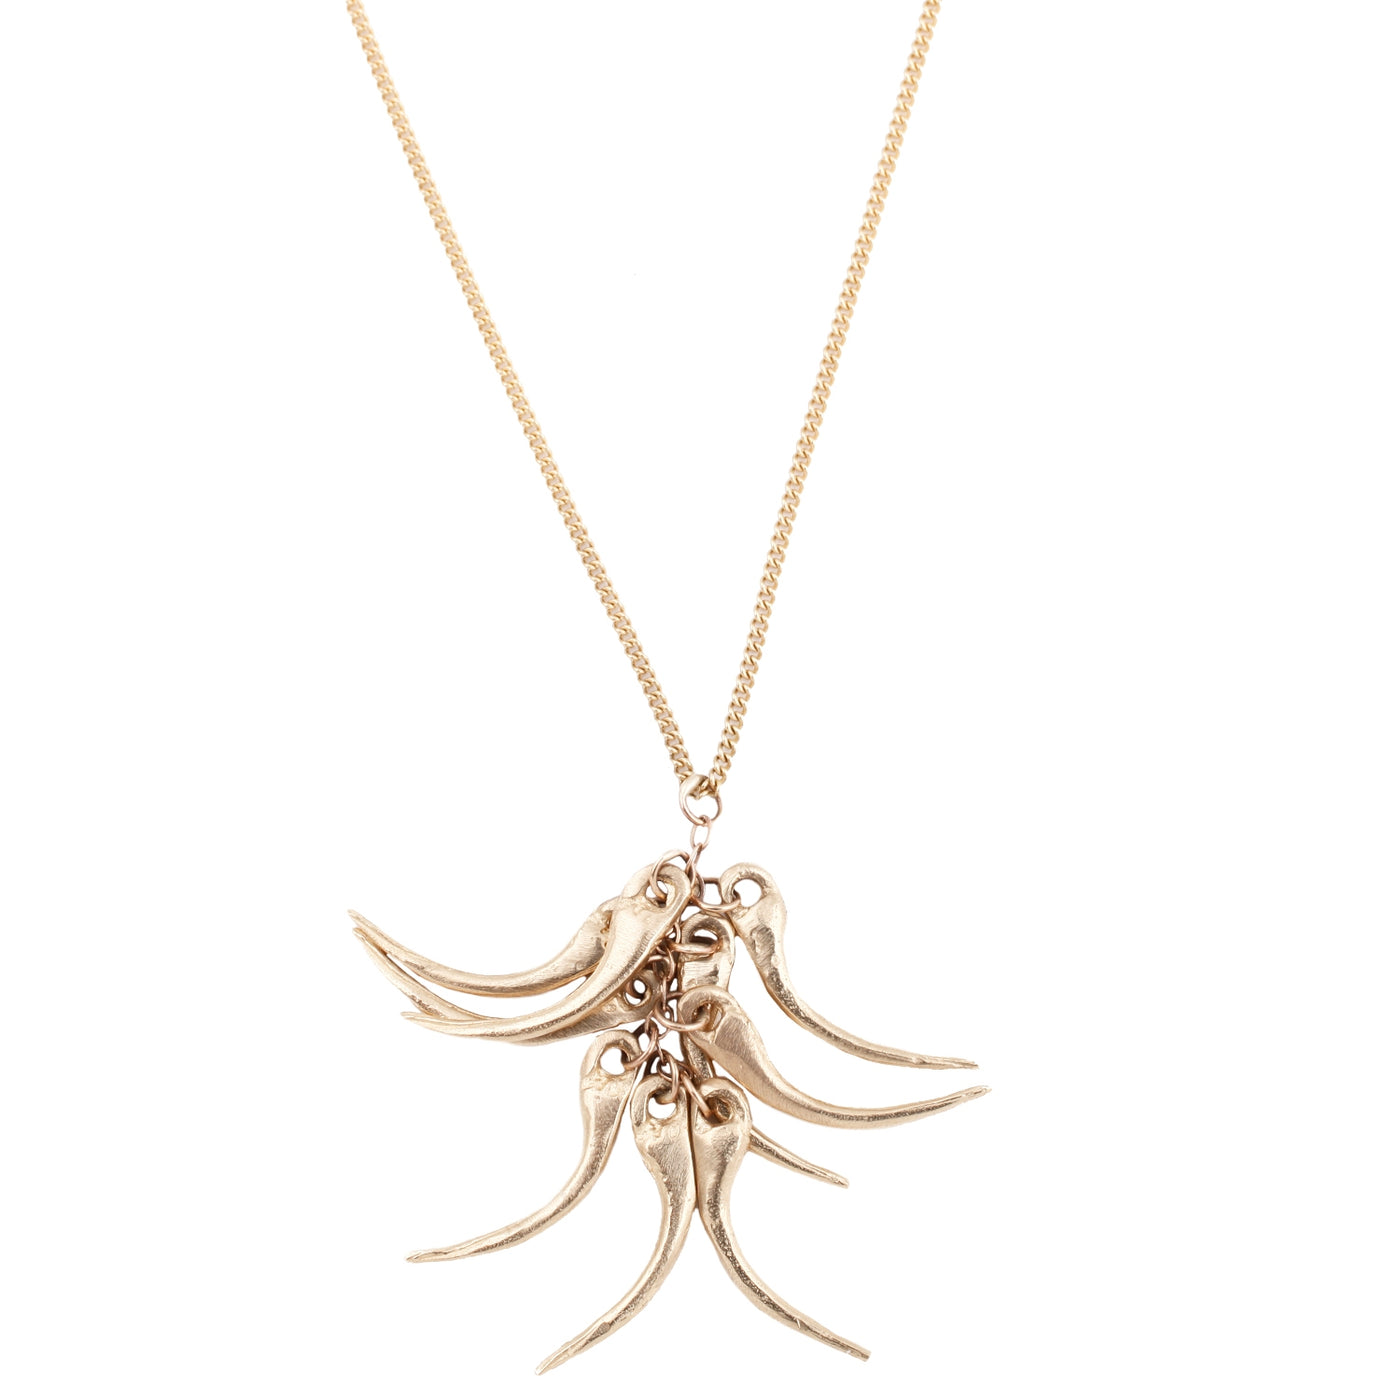 Lauren Wolf Jewelry Gold Snake Fang Necklace